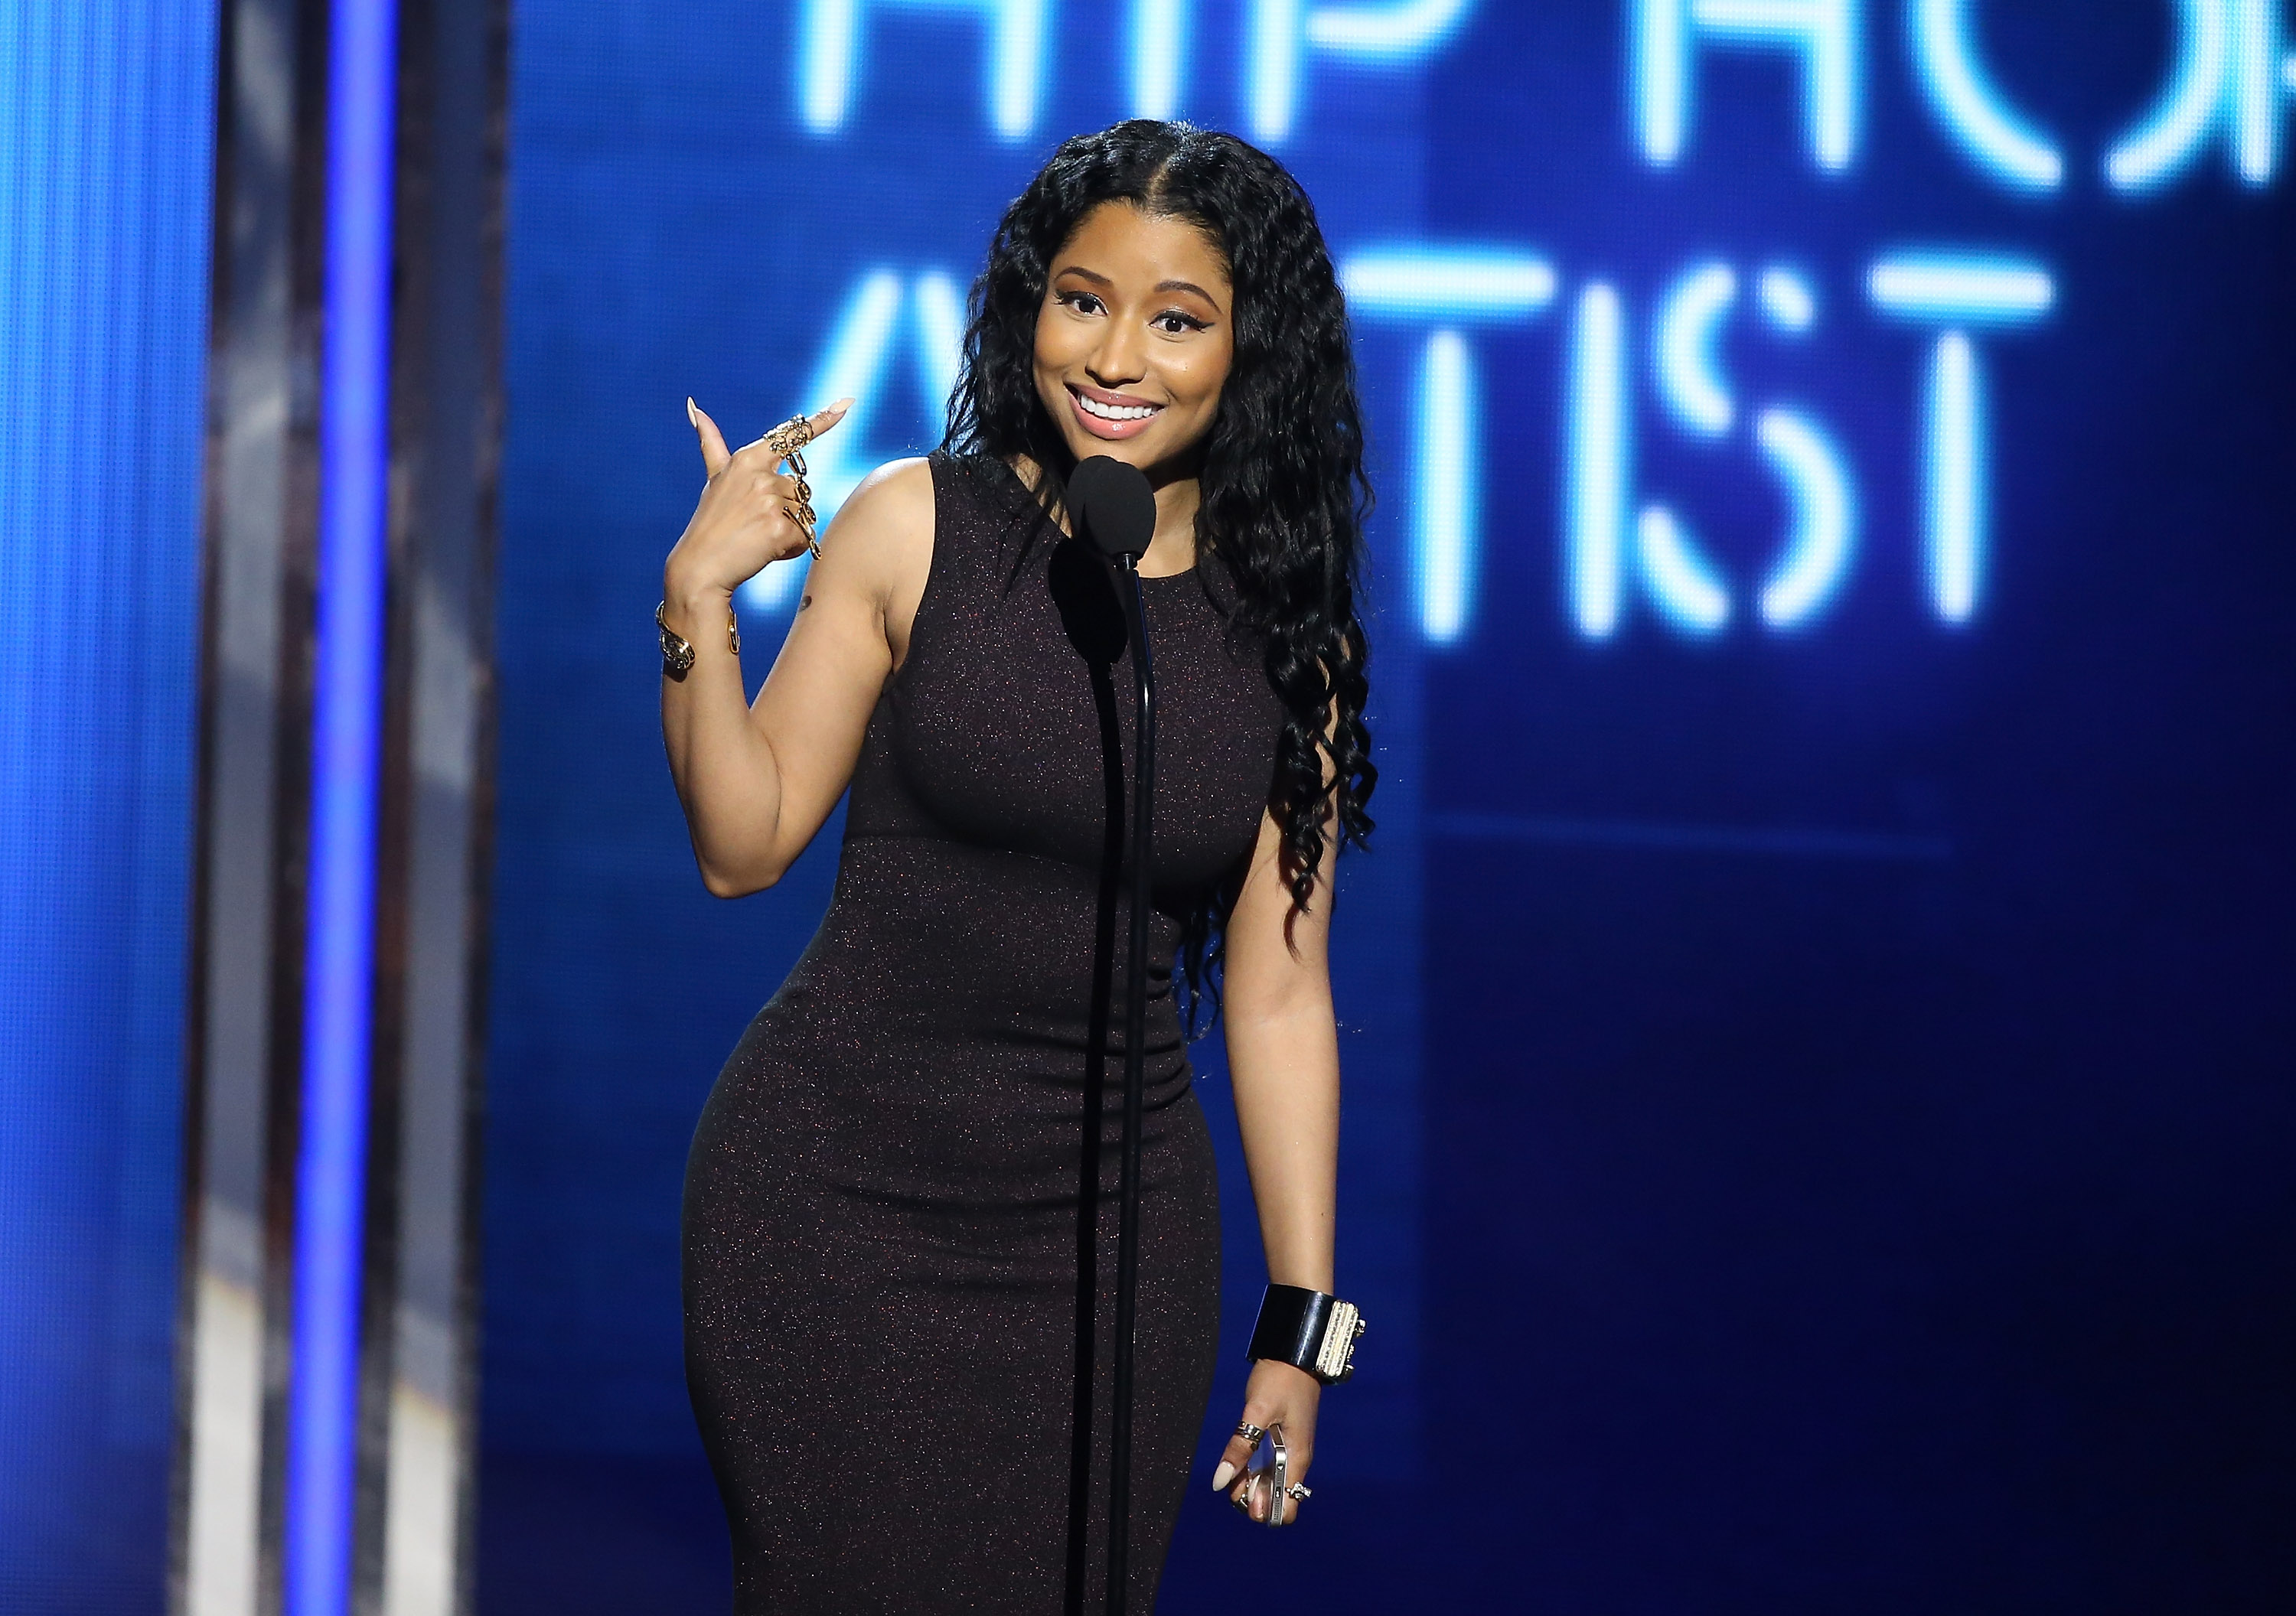 Nicki Minaj speaks onstage during the BET Awards held at Nokia Theater L.A. LIVE on June 29, 2014 in Los Angeles, California.